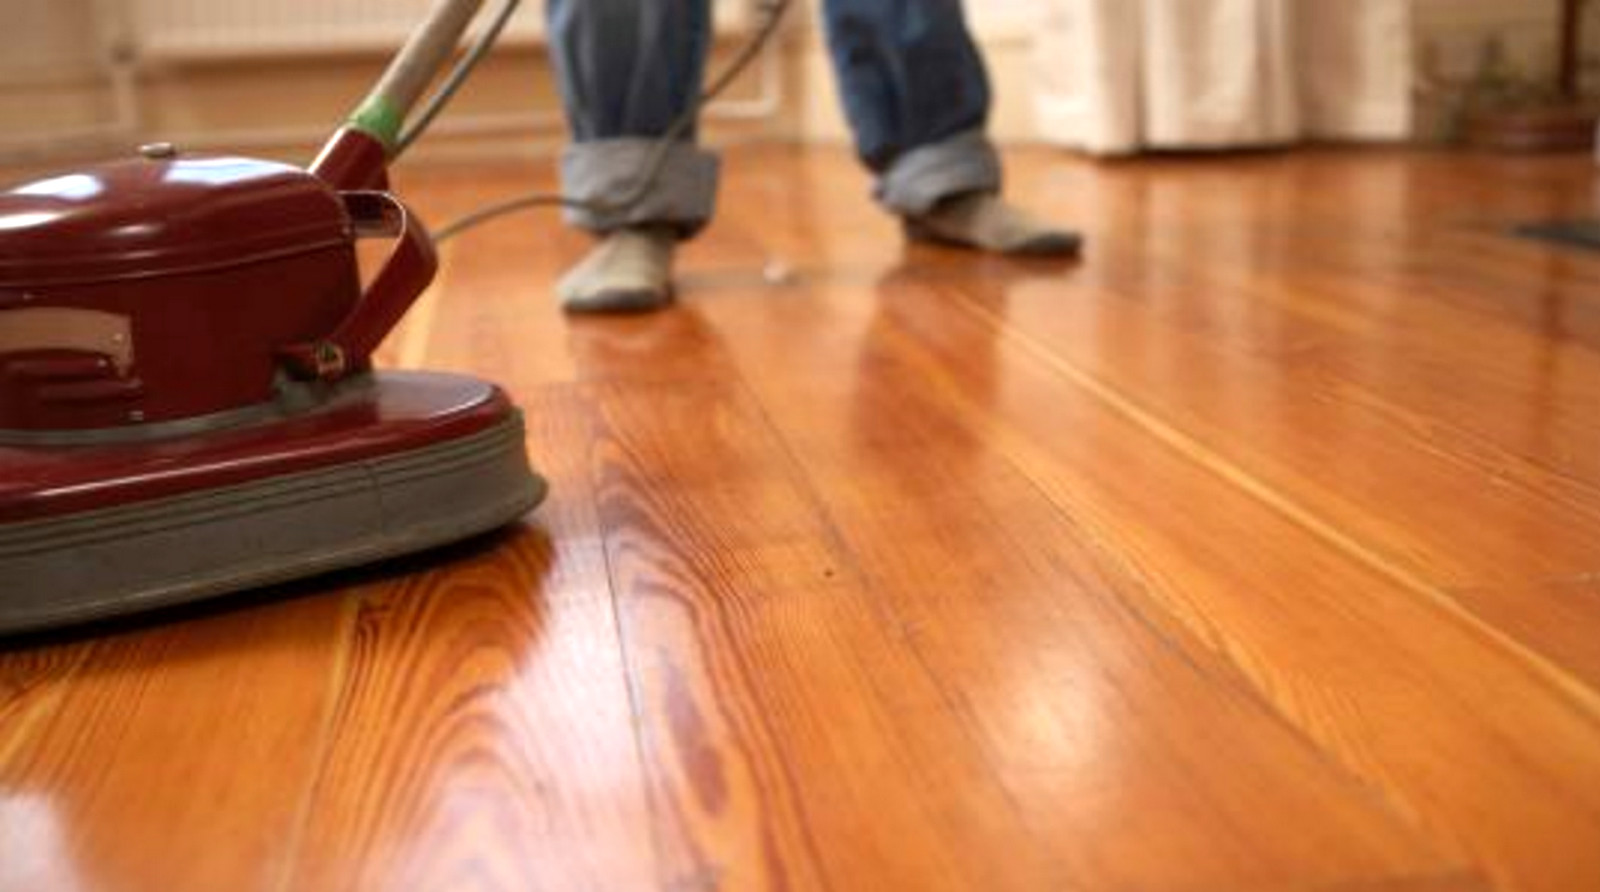 cleaning hardwood floors with vinegar and water of breathtaking clean wood floors with vinegar beautiful floors are for breathtaking clean wood floor with vinegar stylish inspiration how to ward log home solid oak pertaining